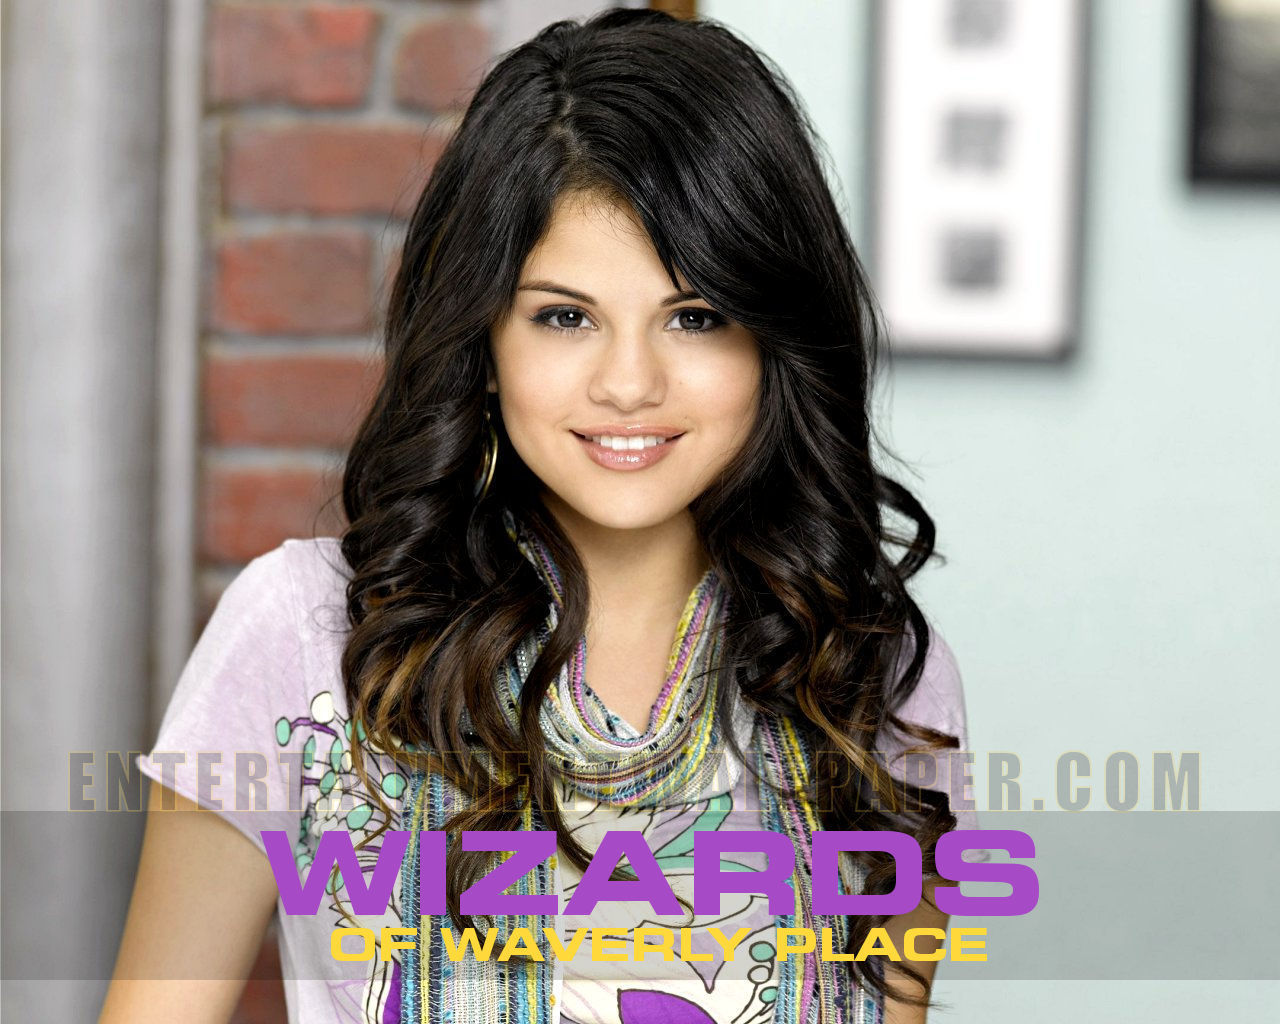 Wizards wizards of waverly place wallpaper 15553355 for The waverly